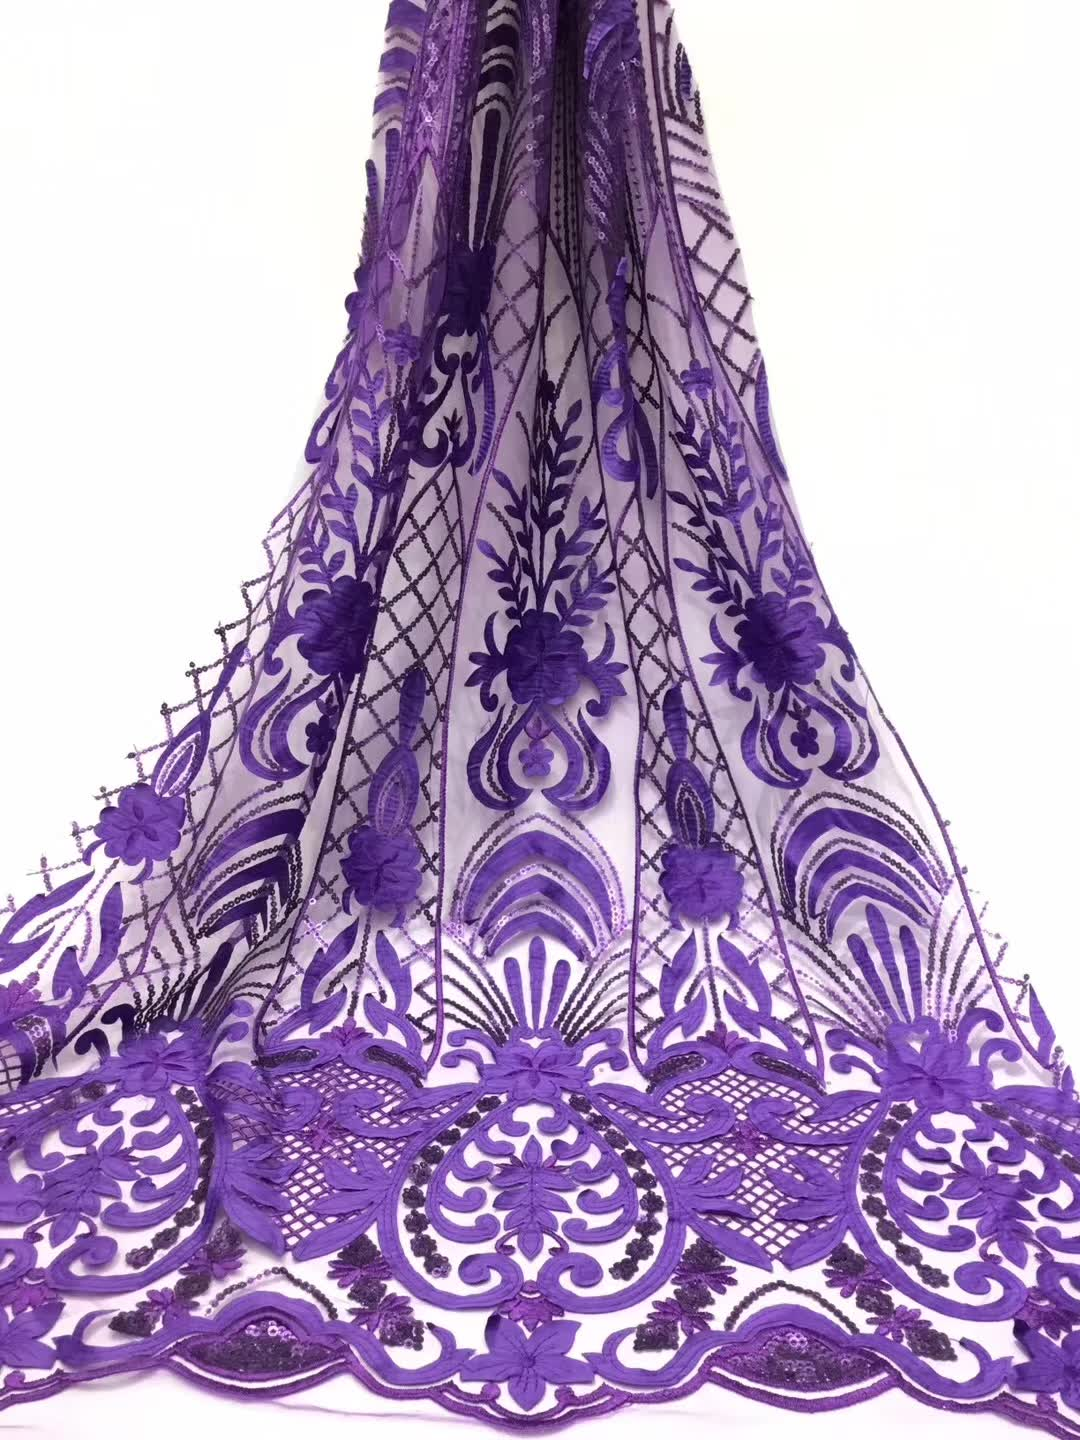 2019 Latest French Nigerian Laces Fabrics High Quality Sequins Tulle African Laces Fabric Wedding French Tulle Lace purple2019 Latest French Nigerian Laces Fabrics High Quality Sequins Tulle African Laces Fabric Wedding French Tulle Lace purple